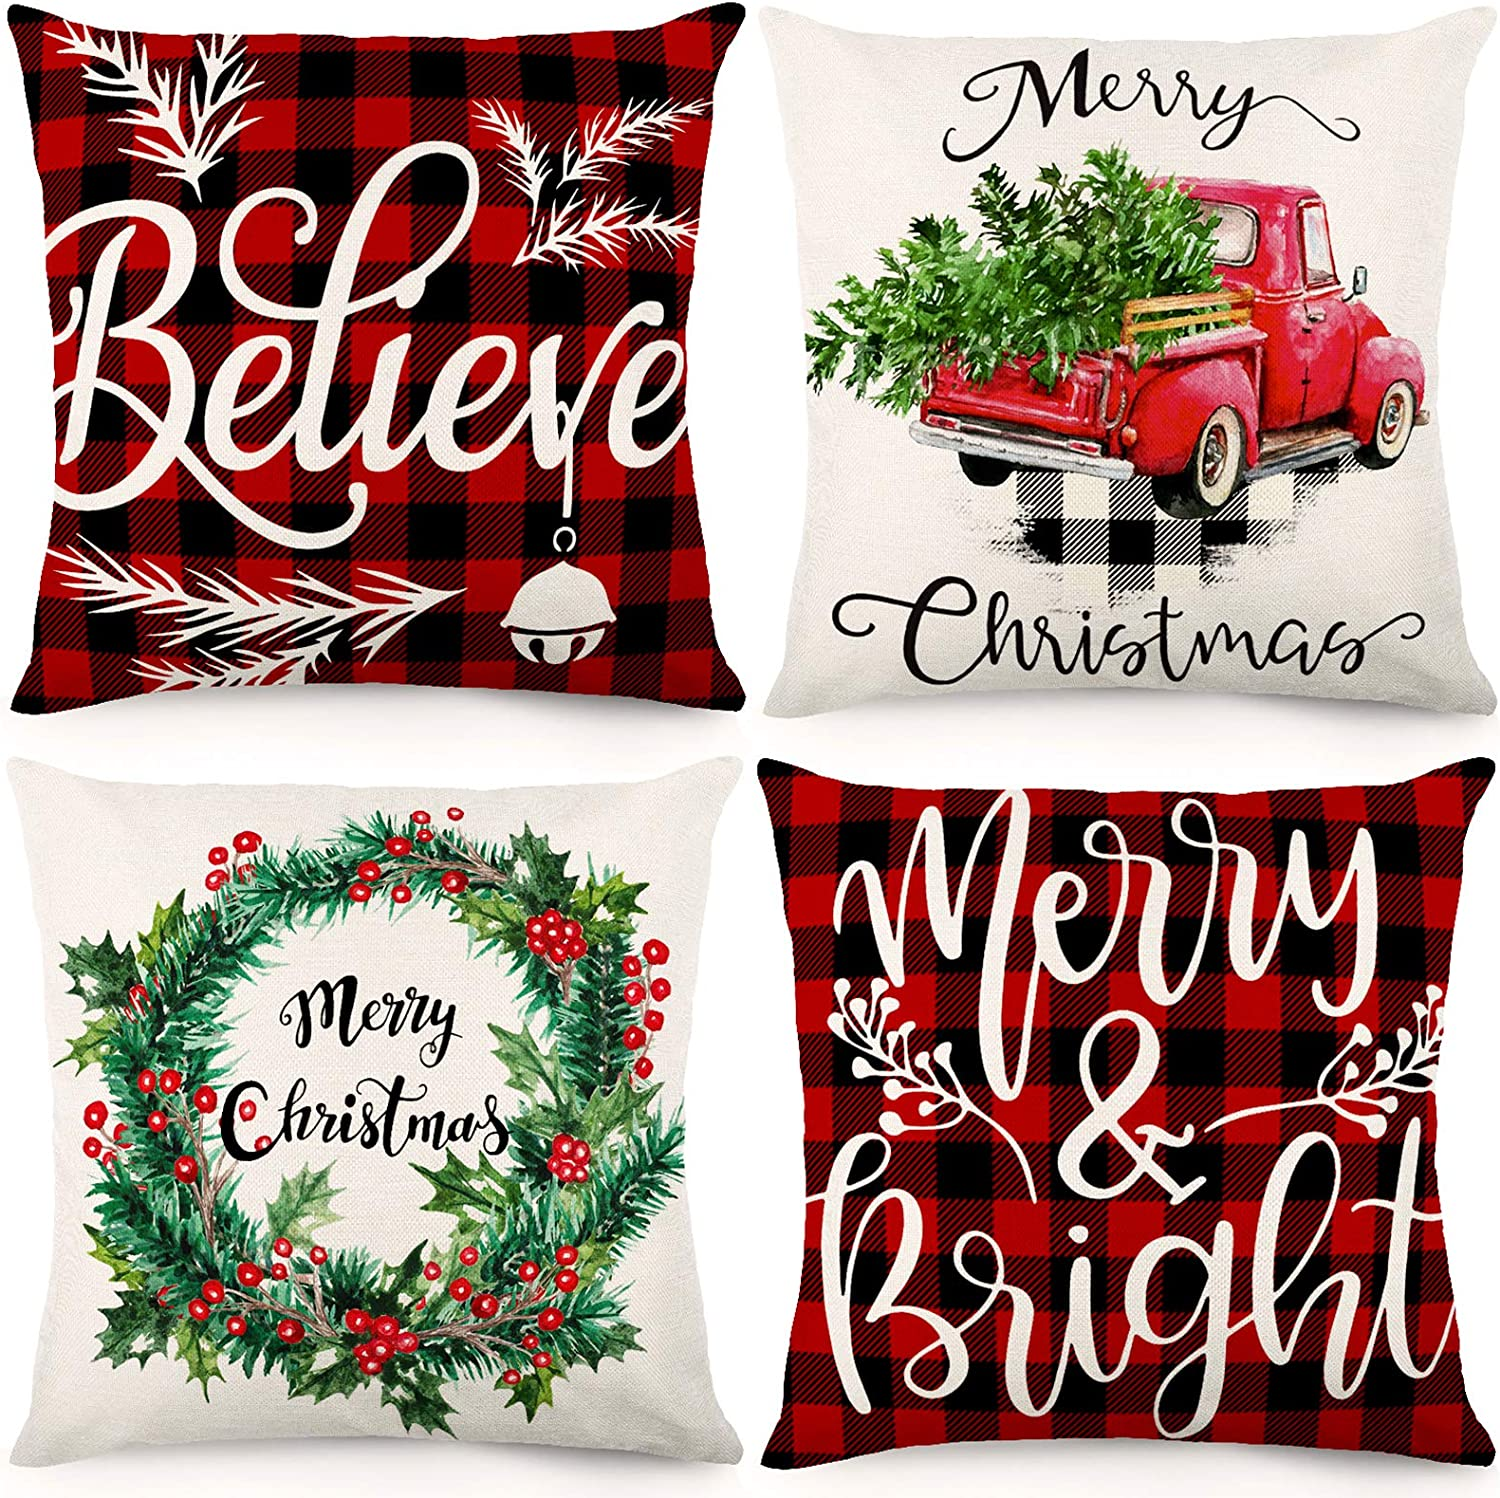 CDWERD Christmas Pillow Covers 18x18Inches Christmas Decorations Farmhouse Buffalo Check Plaid Throw Pillowcase Winter Holiday Cotton Linen Cushion Case for Home Decor Set of 4